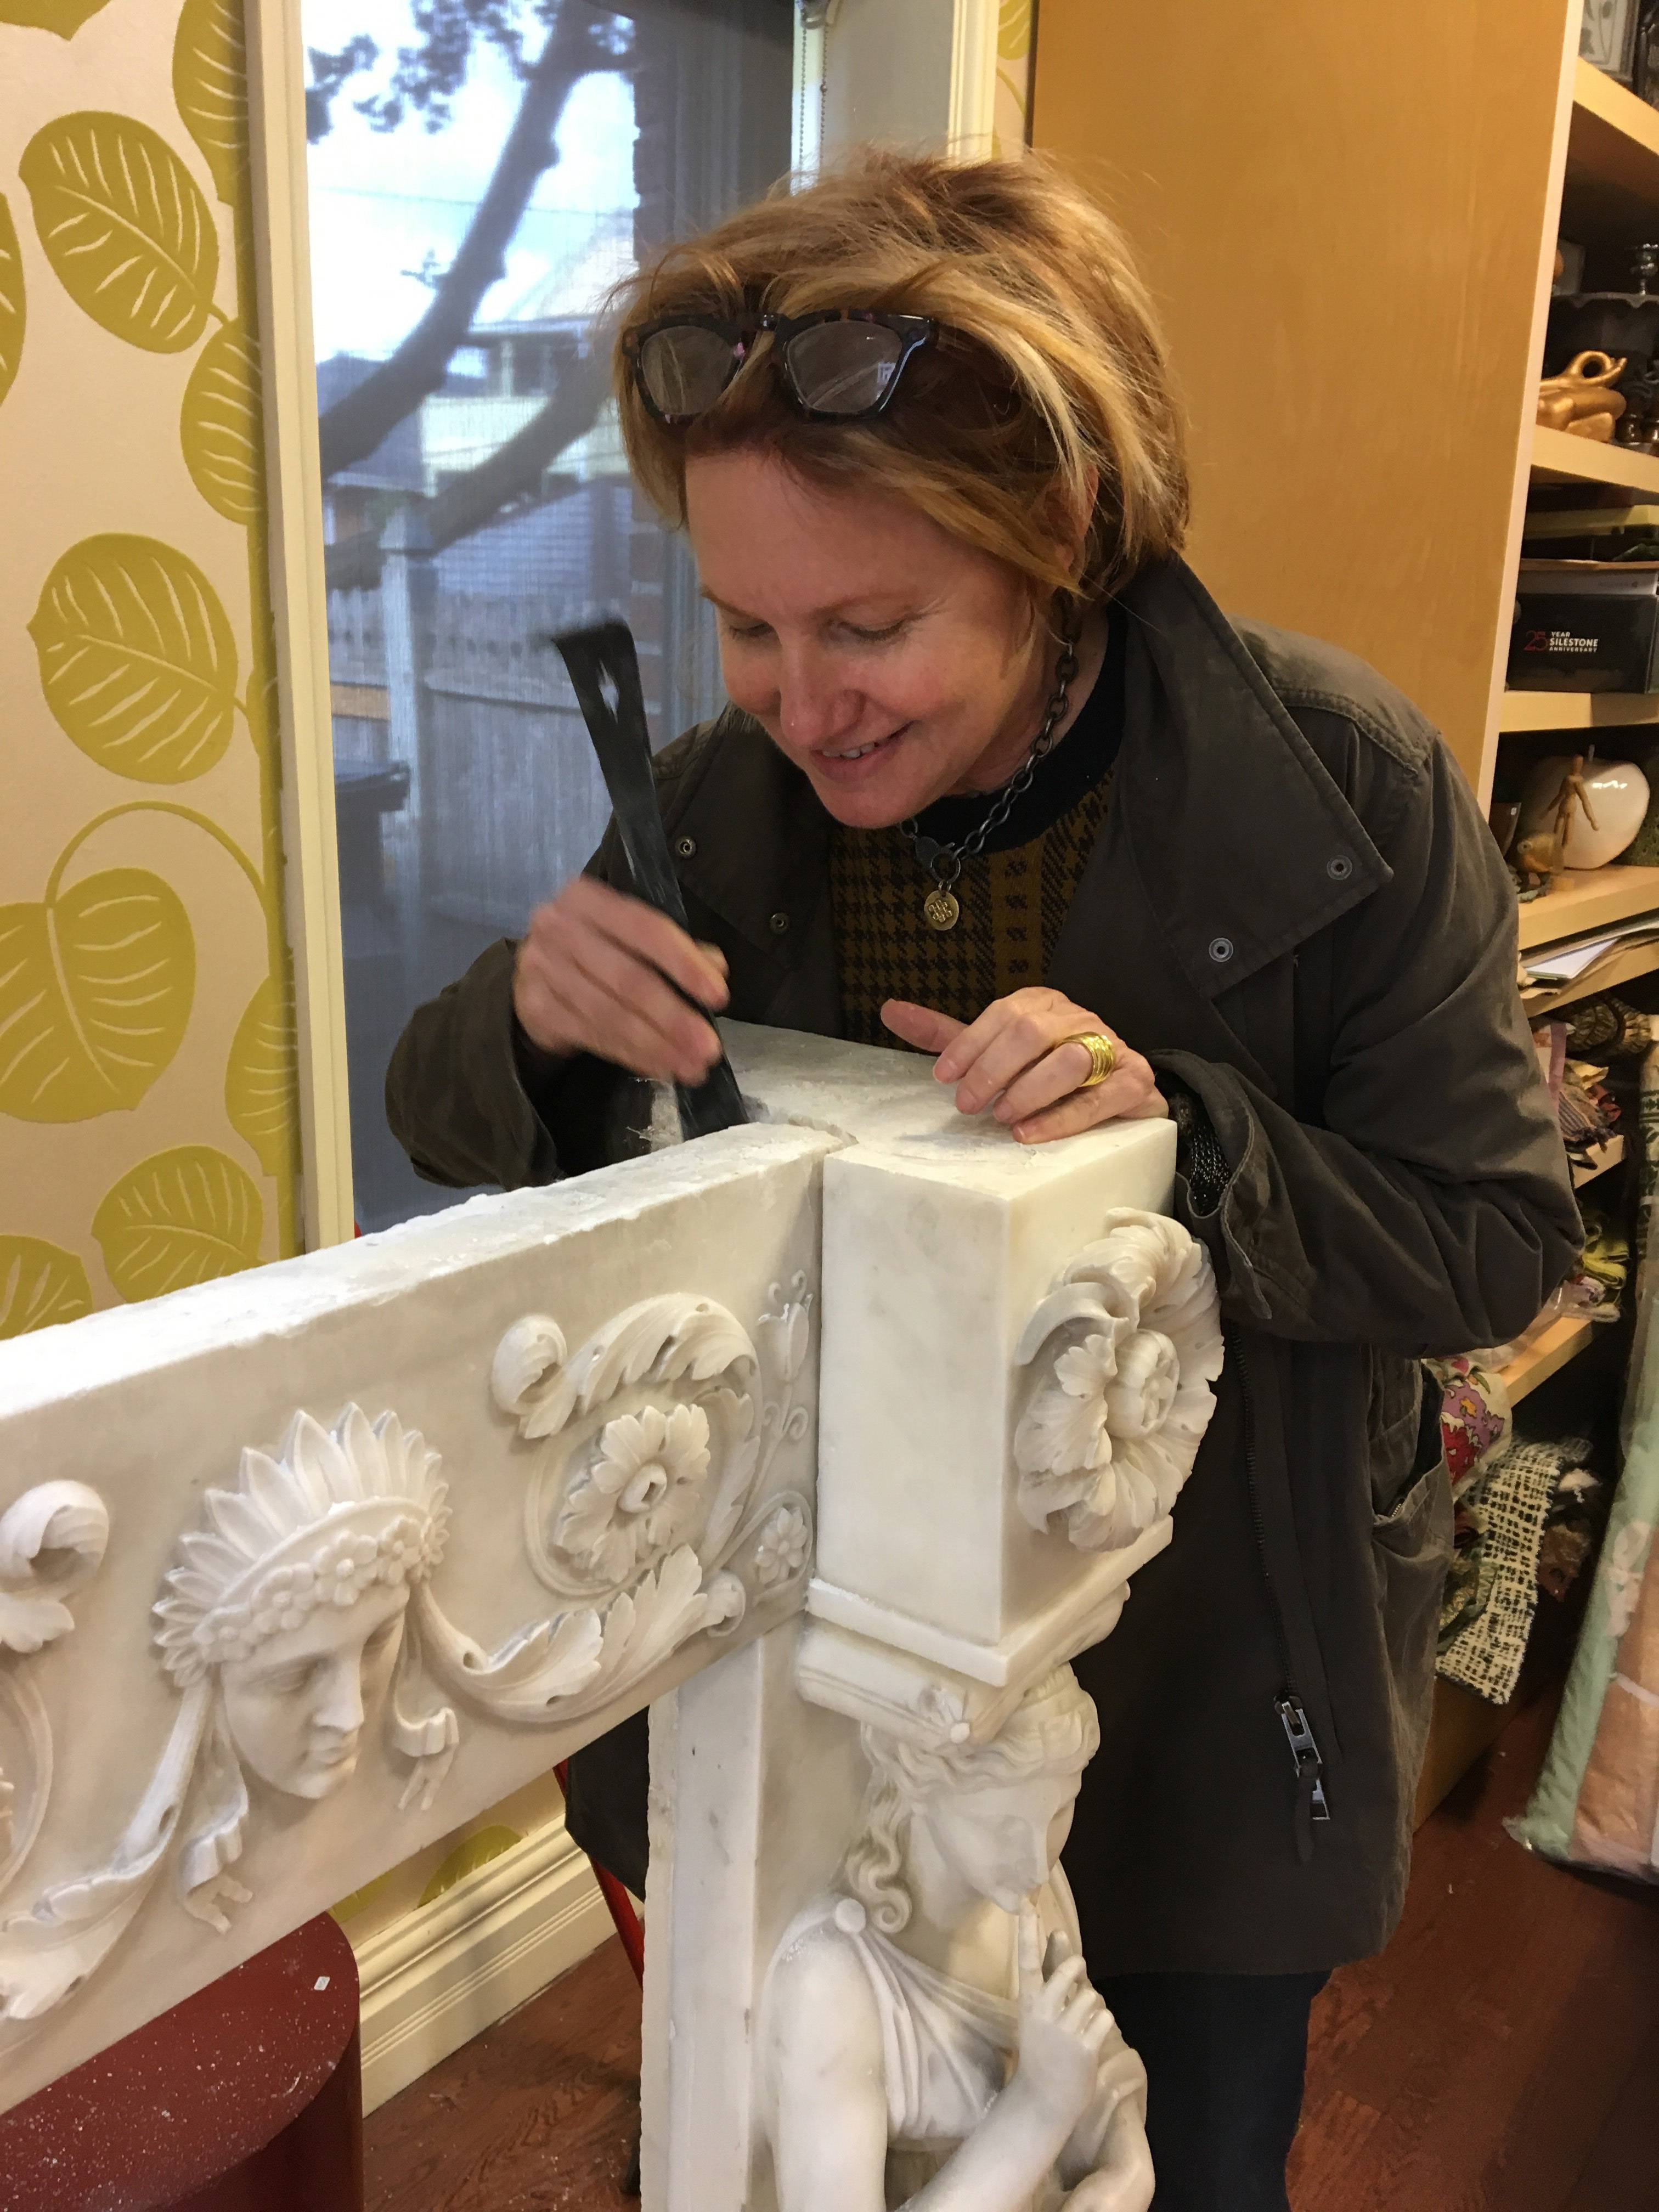 Interior designer Heidi Pribell removes a 1805 marble mantelpiece from the wall of a home in Boston. Pribell sold the mantelpiece to the Museum of Fine Arts later. When Pribell first spotted this dust-covered mantelpiece, it was in the basement of a client's newly purchased home.